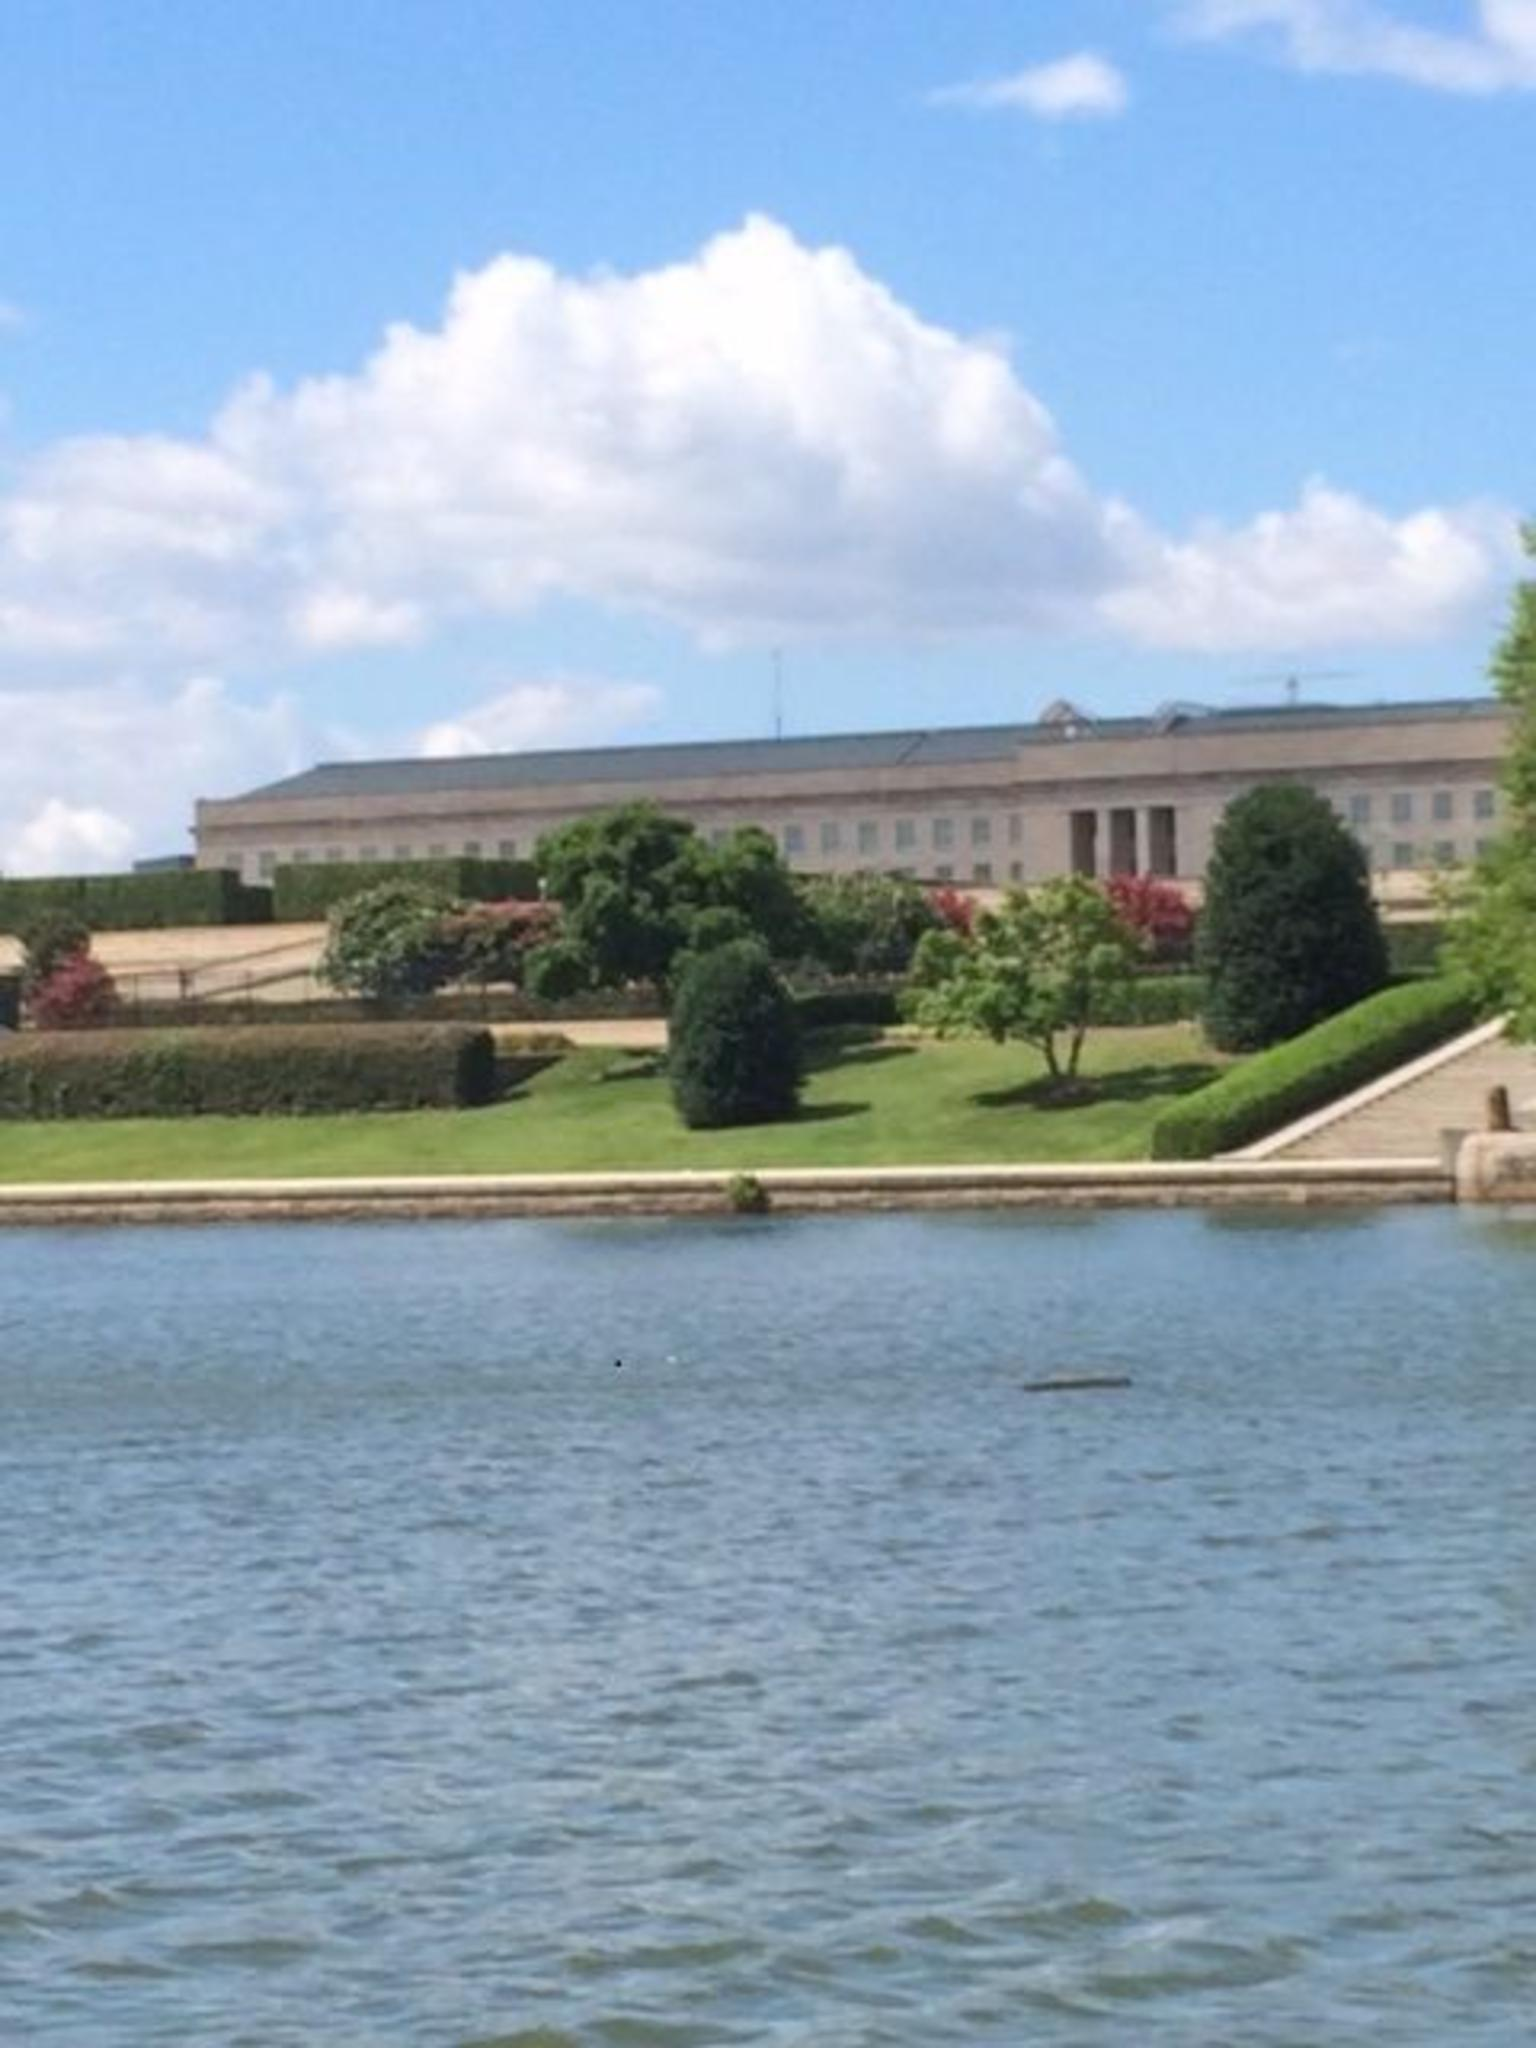 Pentagon from the Potomac River